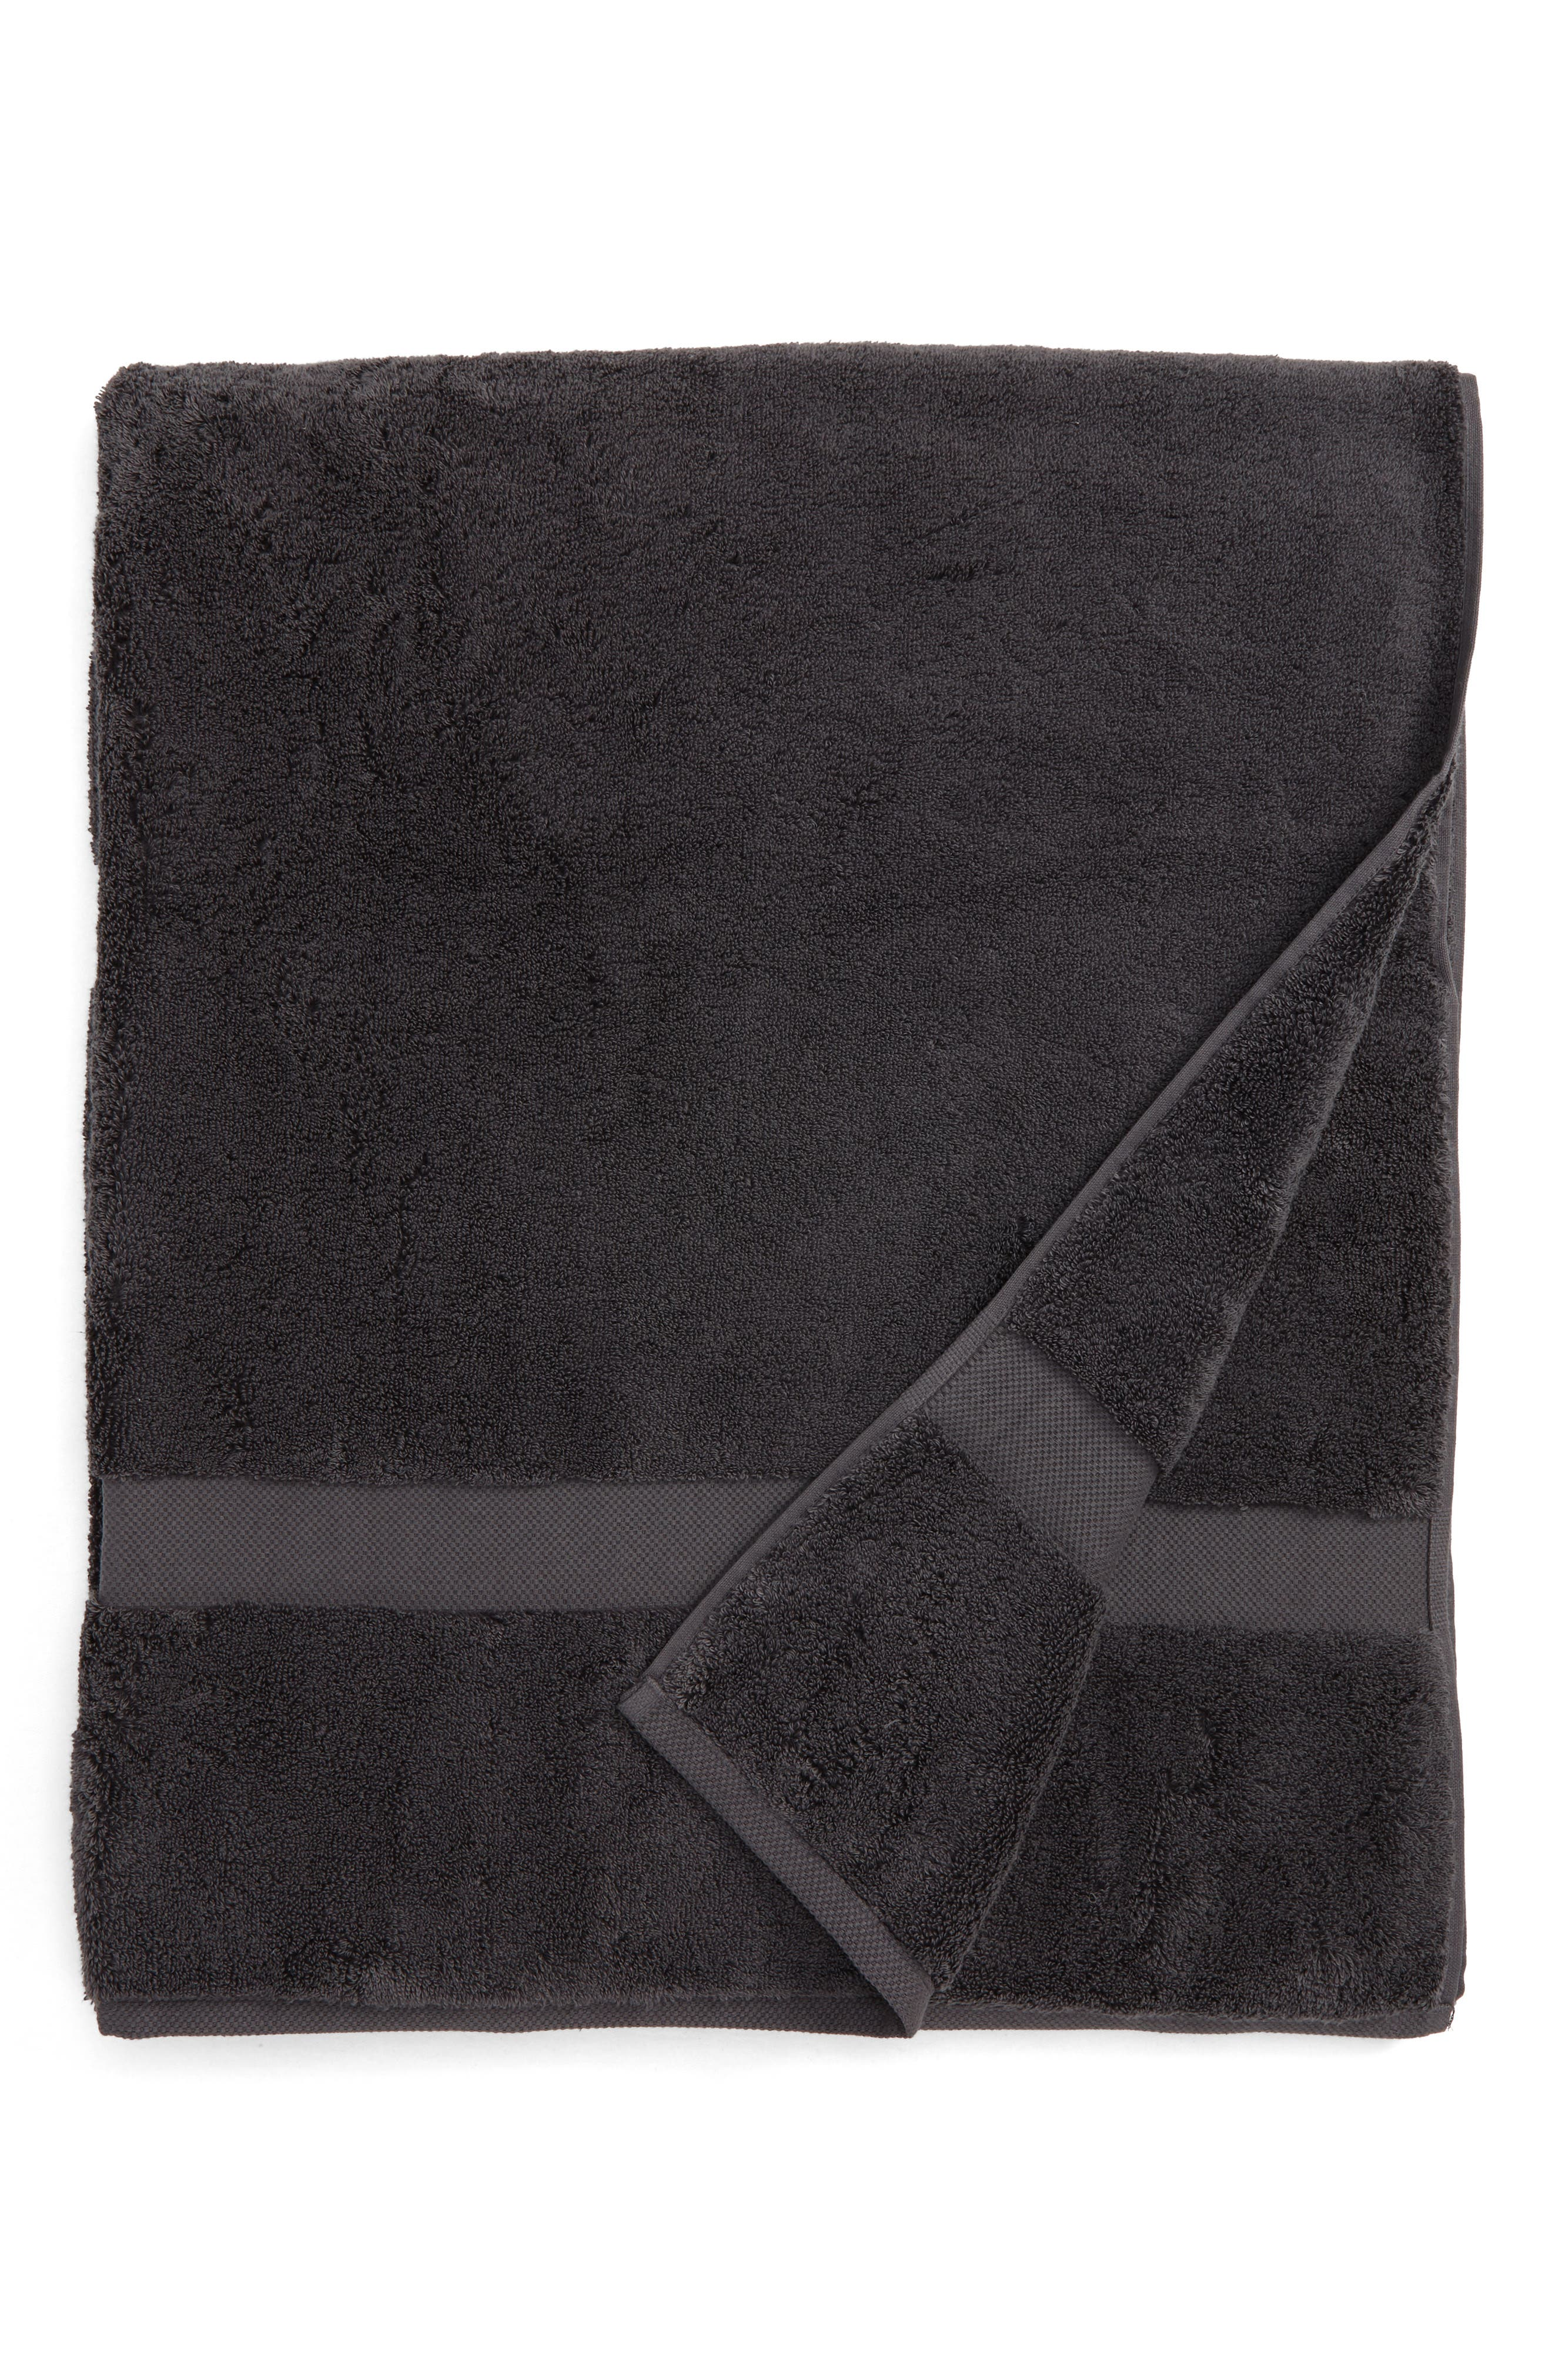 Lotus Bath Sheet,                         Main,                         color, CHARCOAL